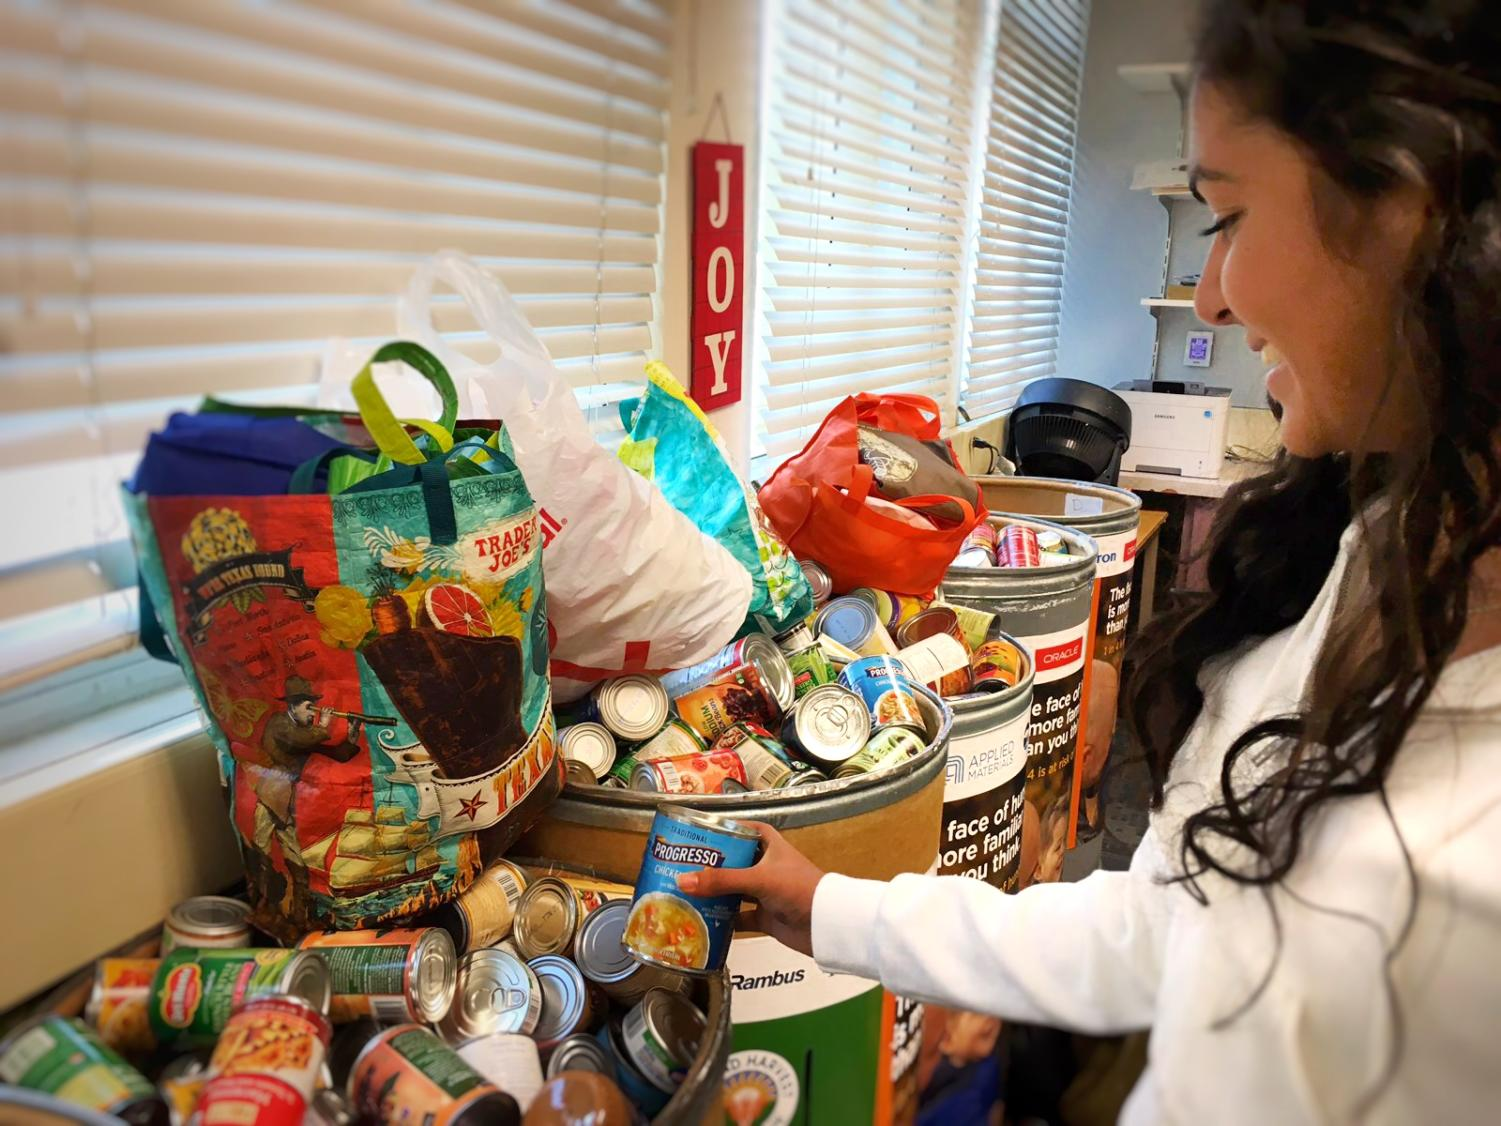 Soni Kanaya, a junior and member of ASB, organizes and prepares the canned food donations for collection.